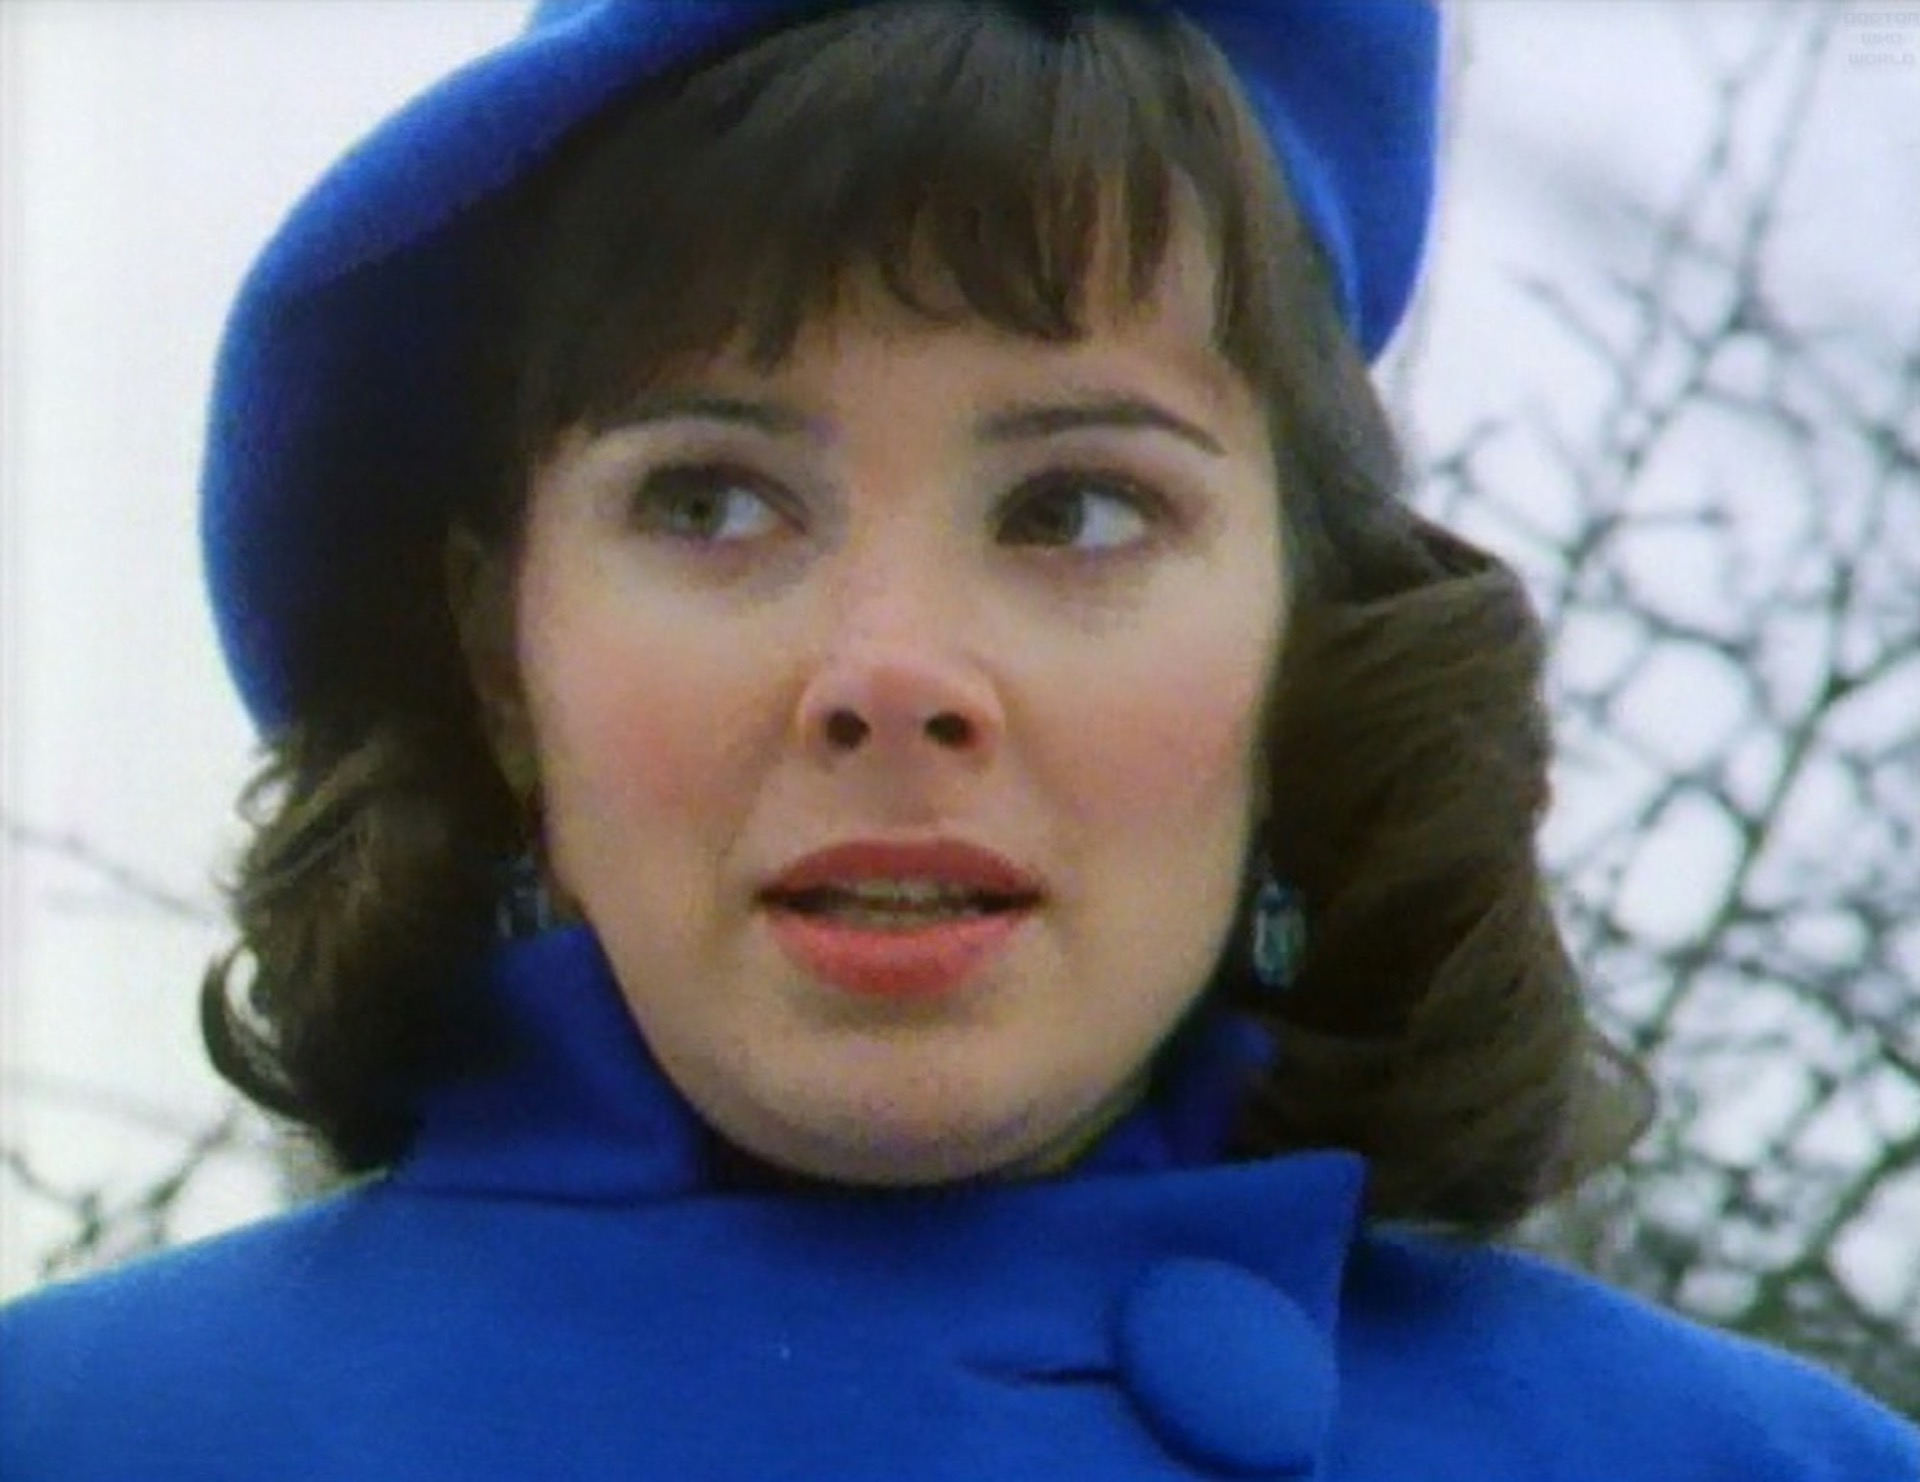 Peri as in Revelation of the Daleks